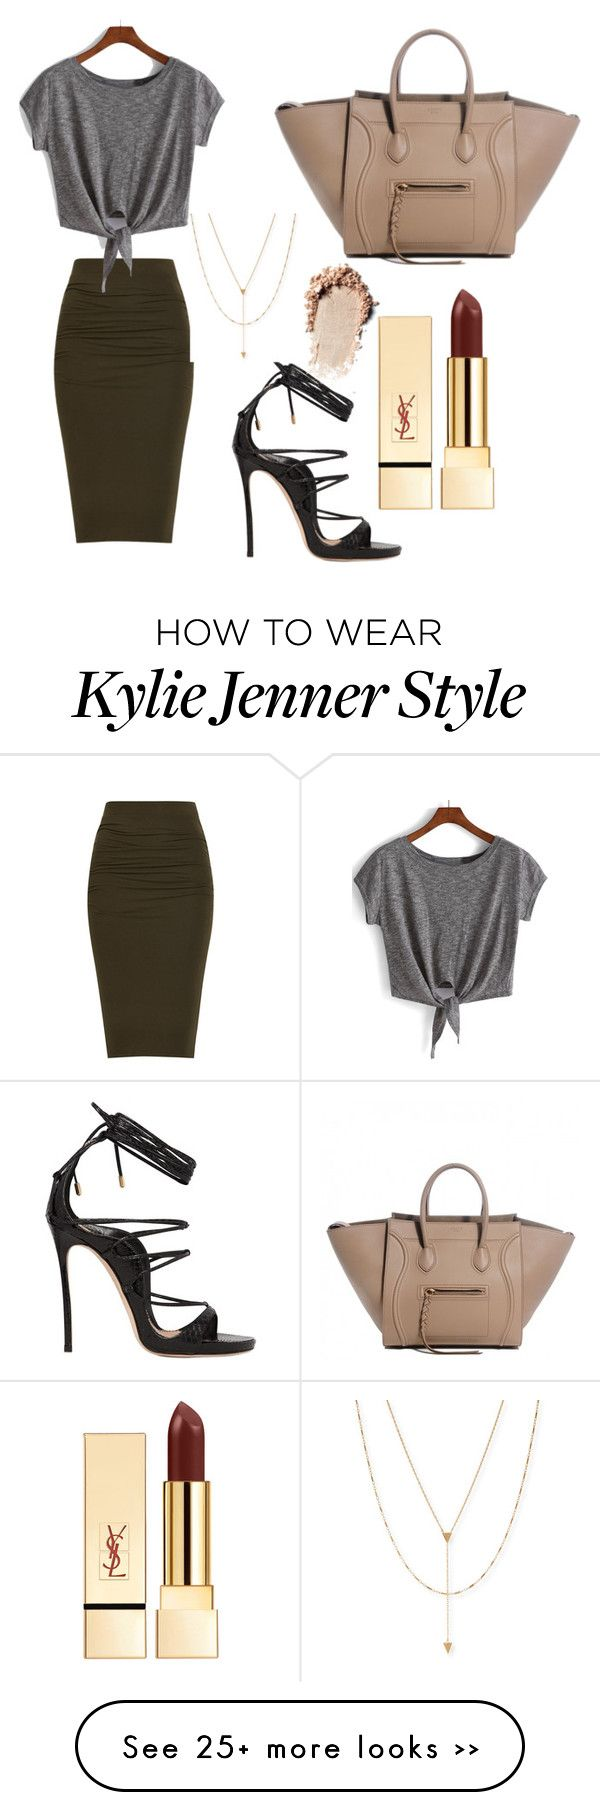 """""""Kylie jenner style"""" by zarahweiler on Polyvore, not a fan of her but I like this look"""